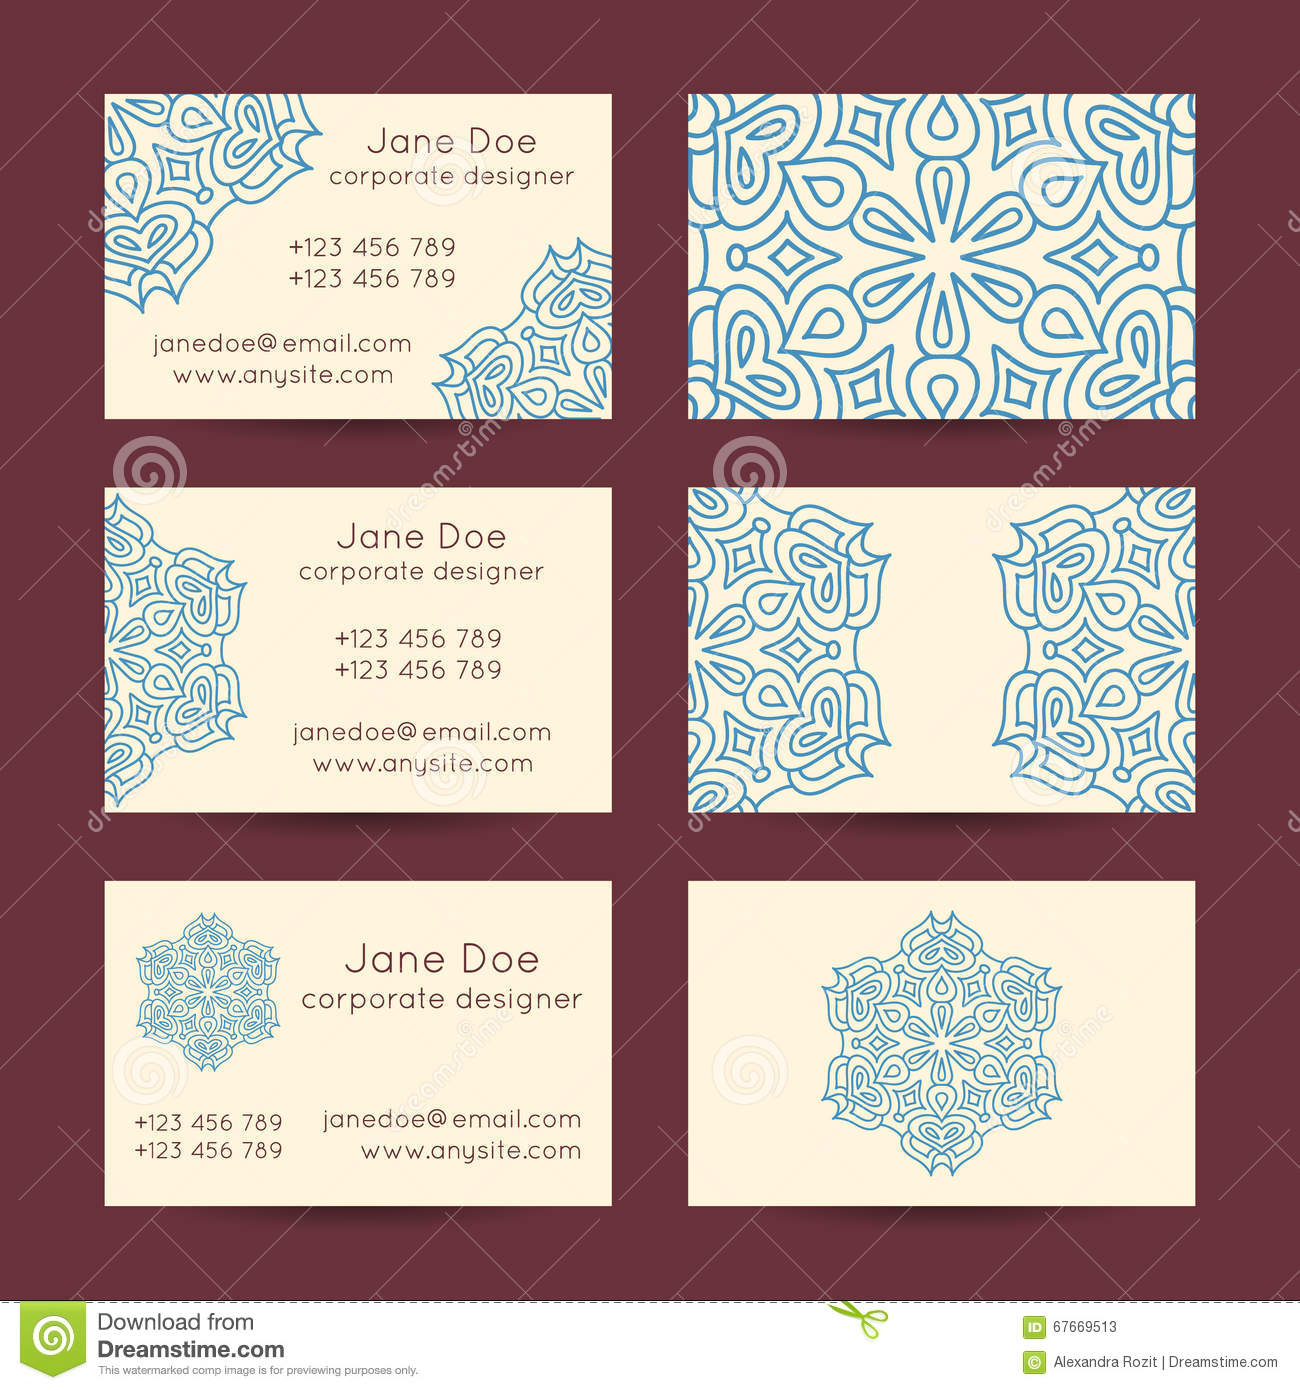 Vintage Business Cards Templates Stock Vector - Image: 67669513